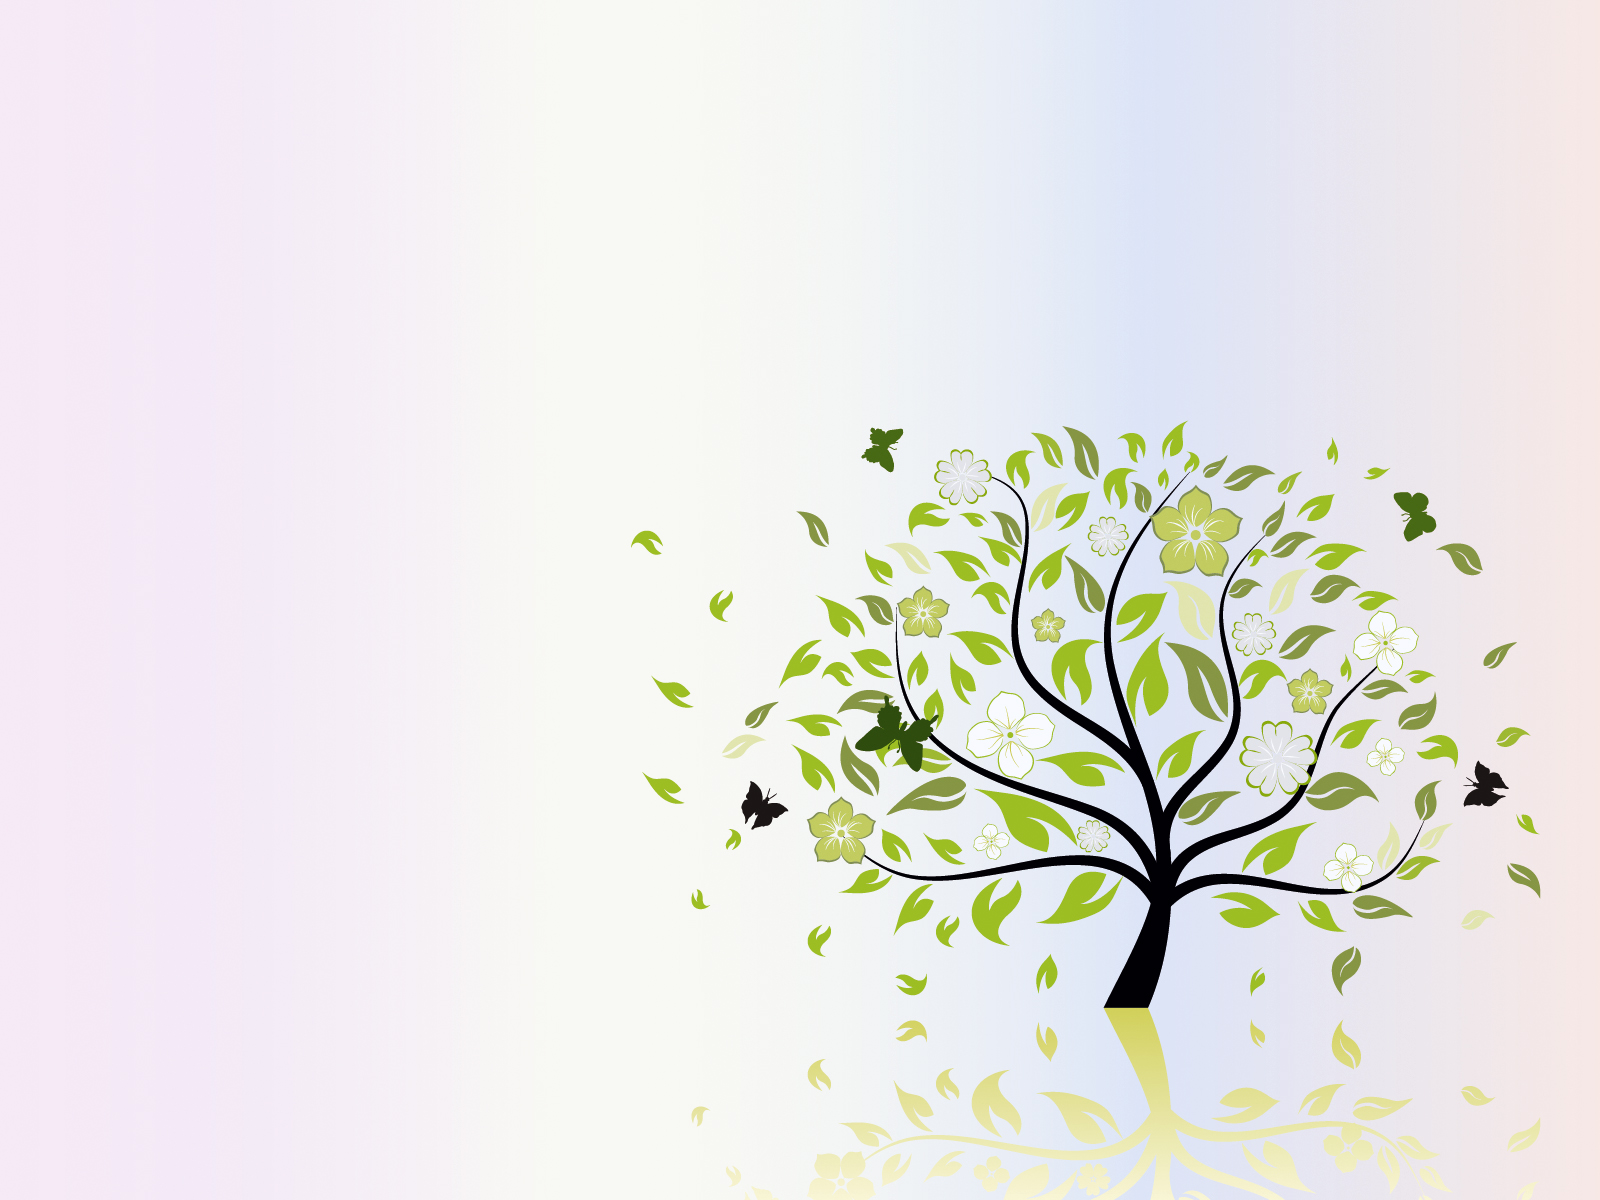 folio tree nature backgrounds green nature templates